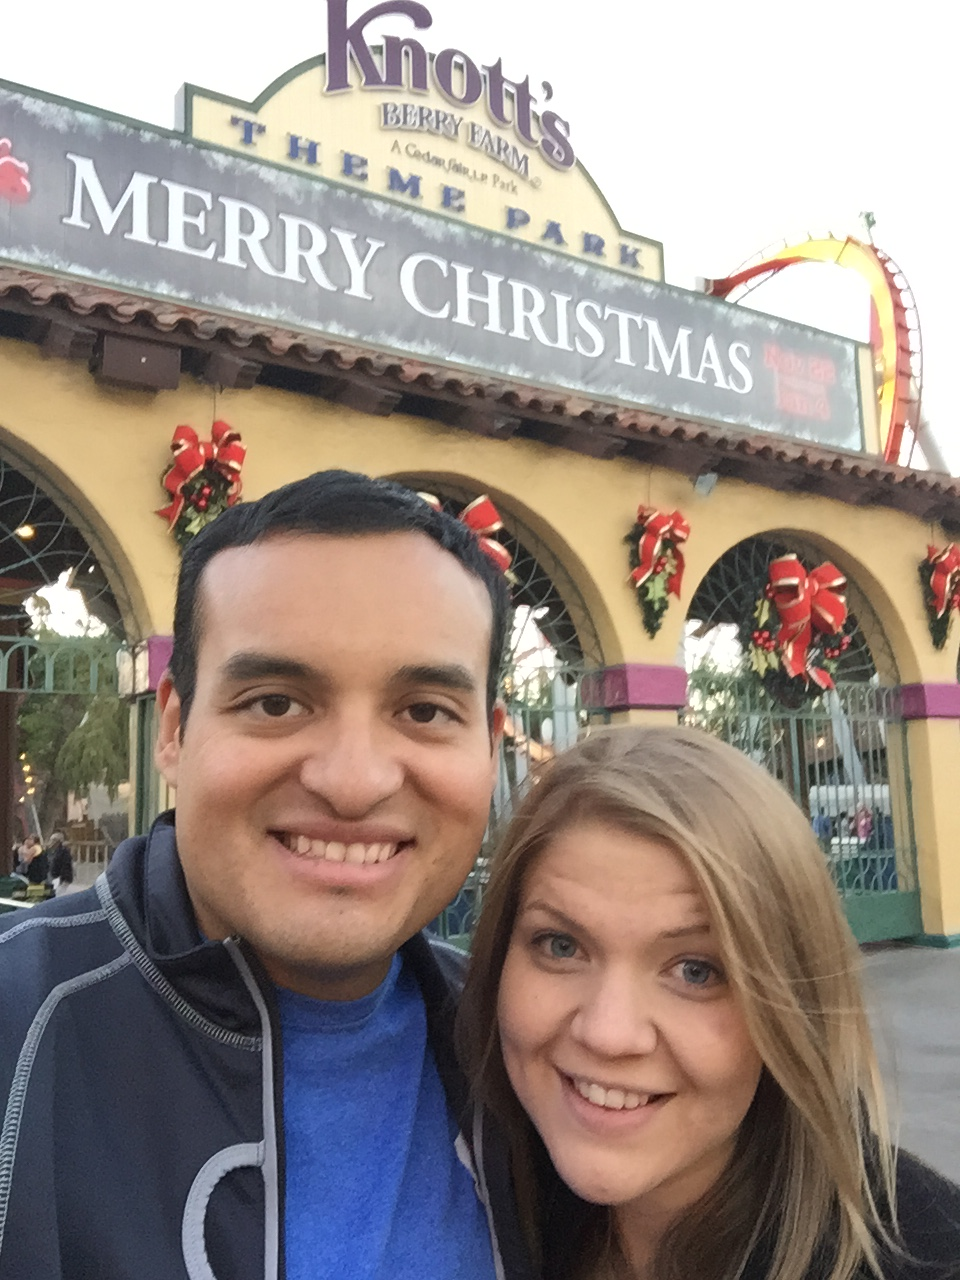 First time at Knott's Berry Farm for Wendy and I